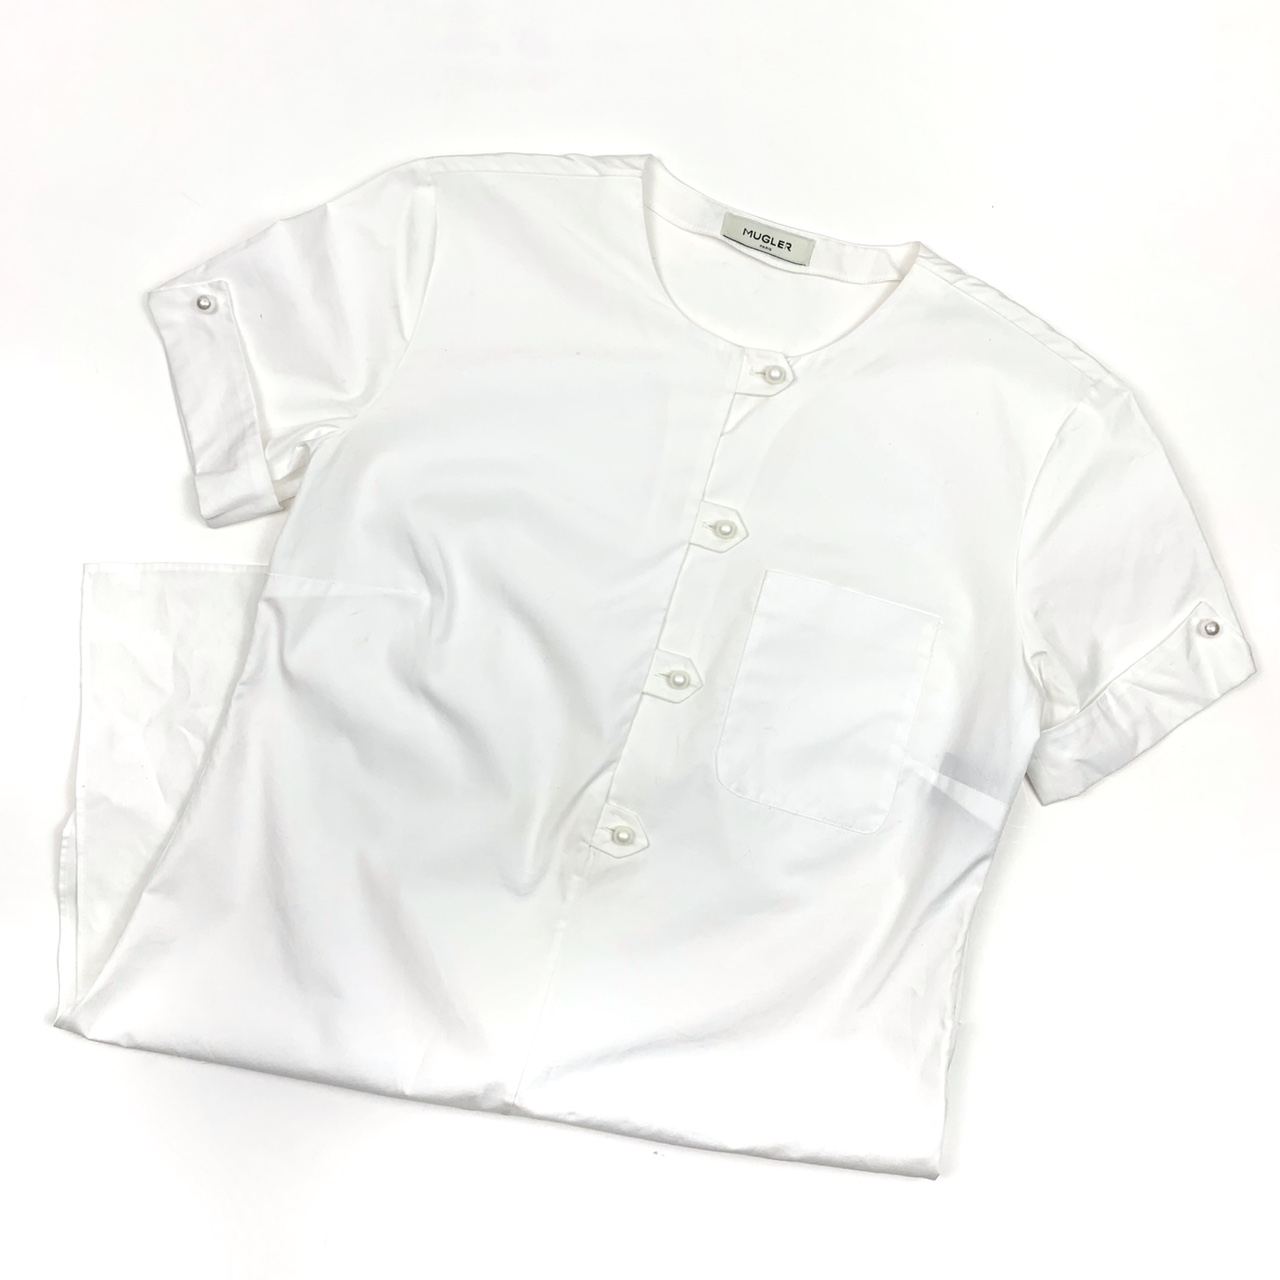 Product Image 1 - Mugler White Pearl Button Short